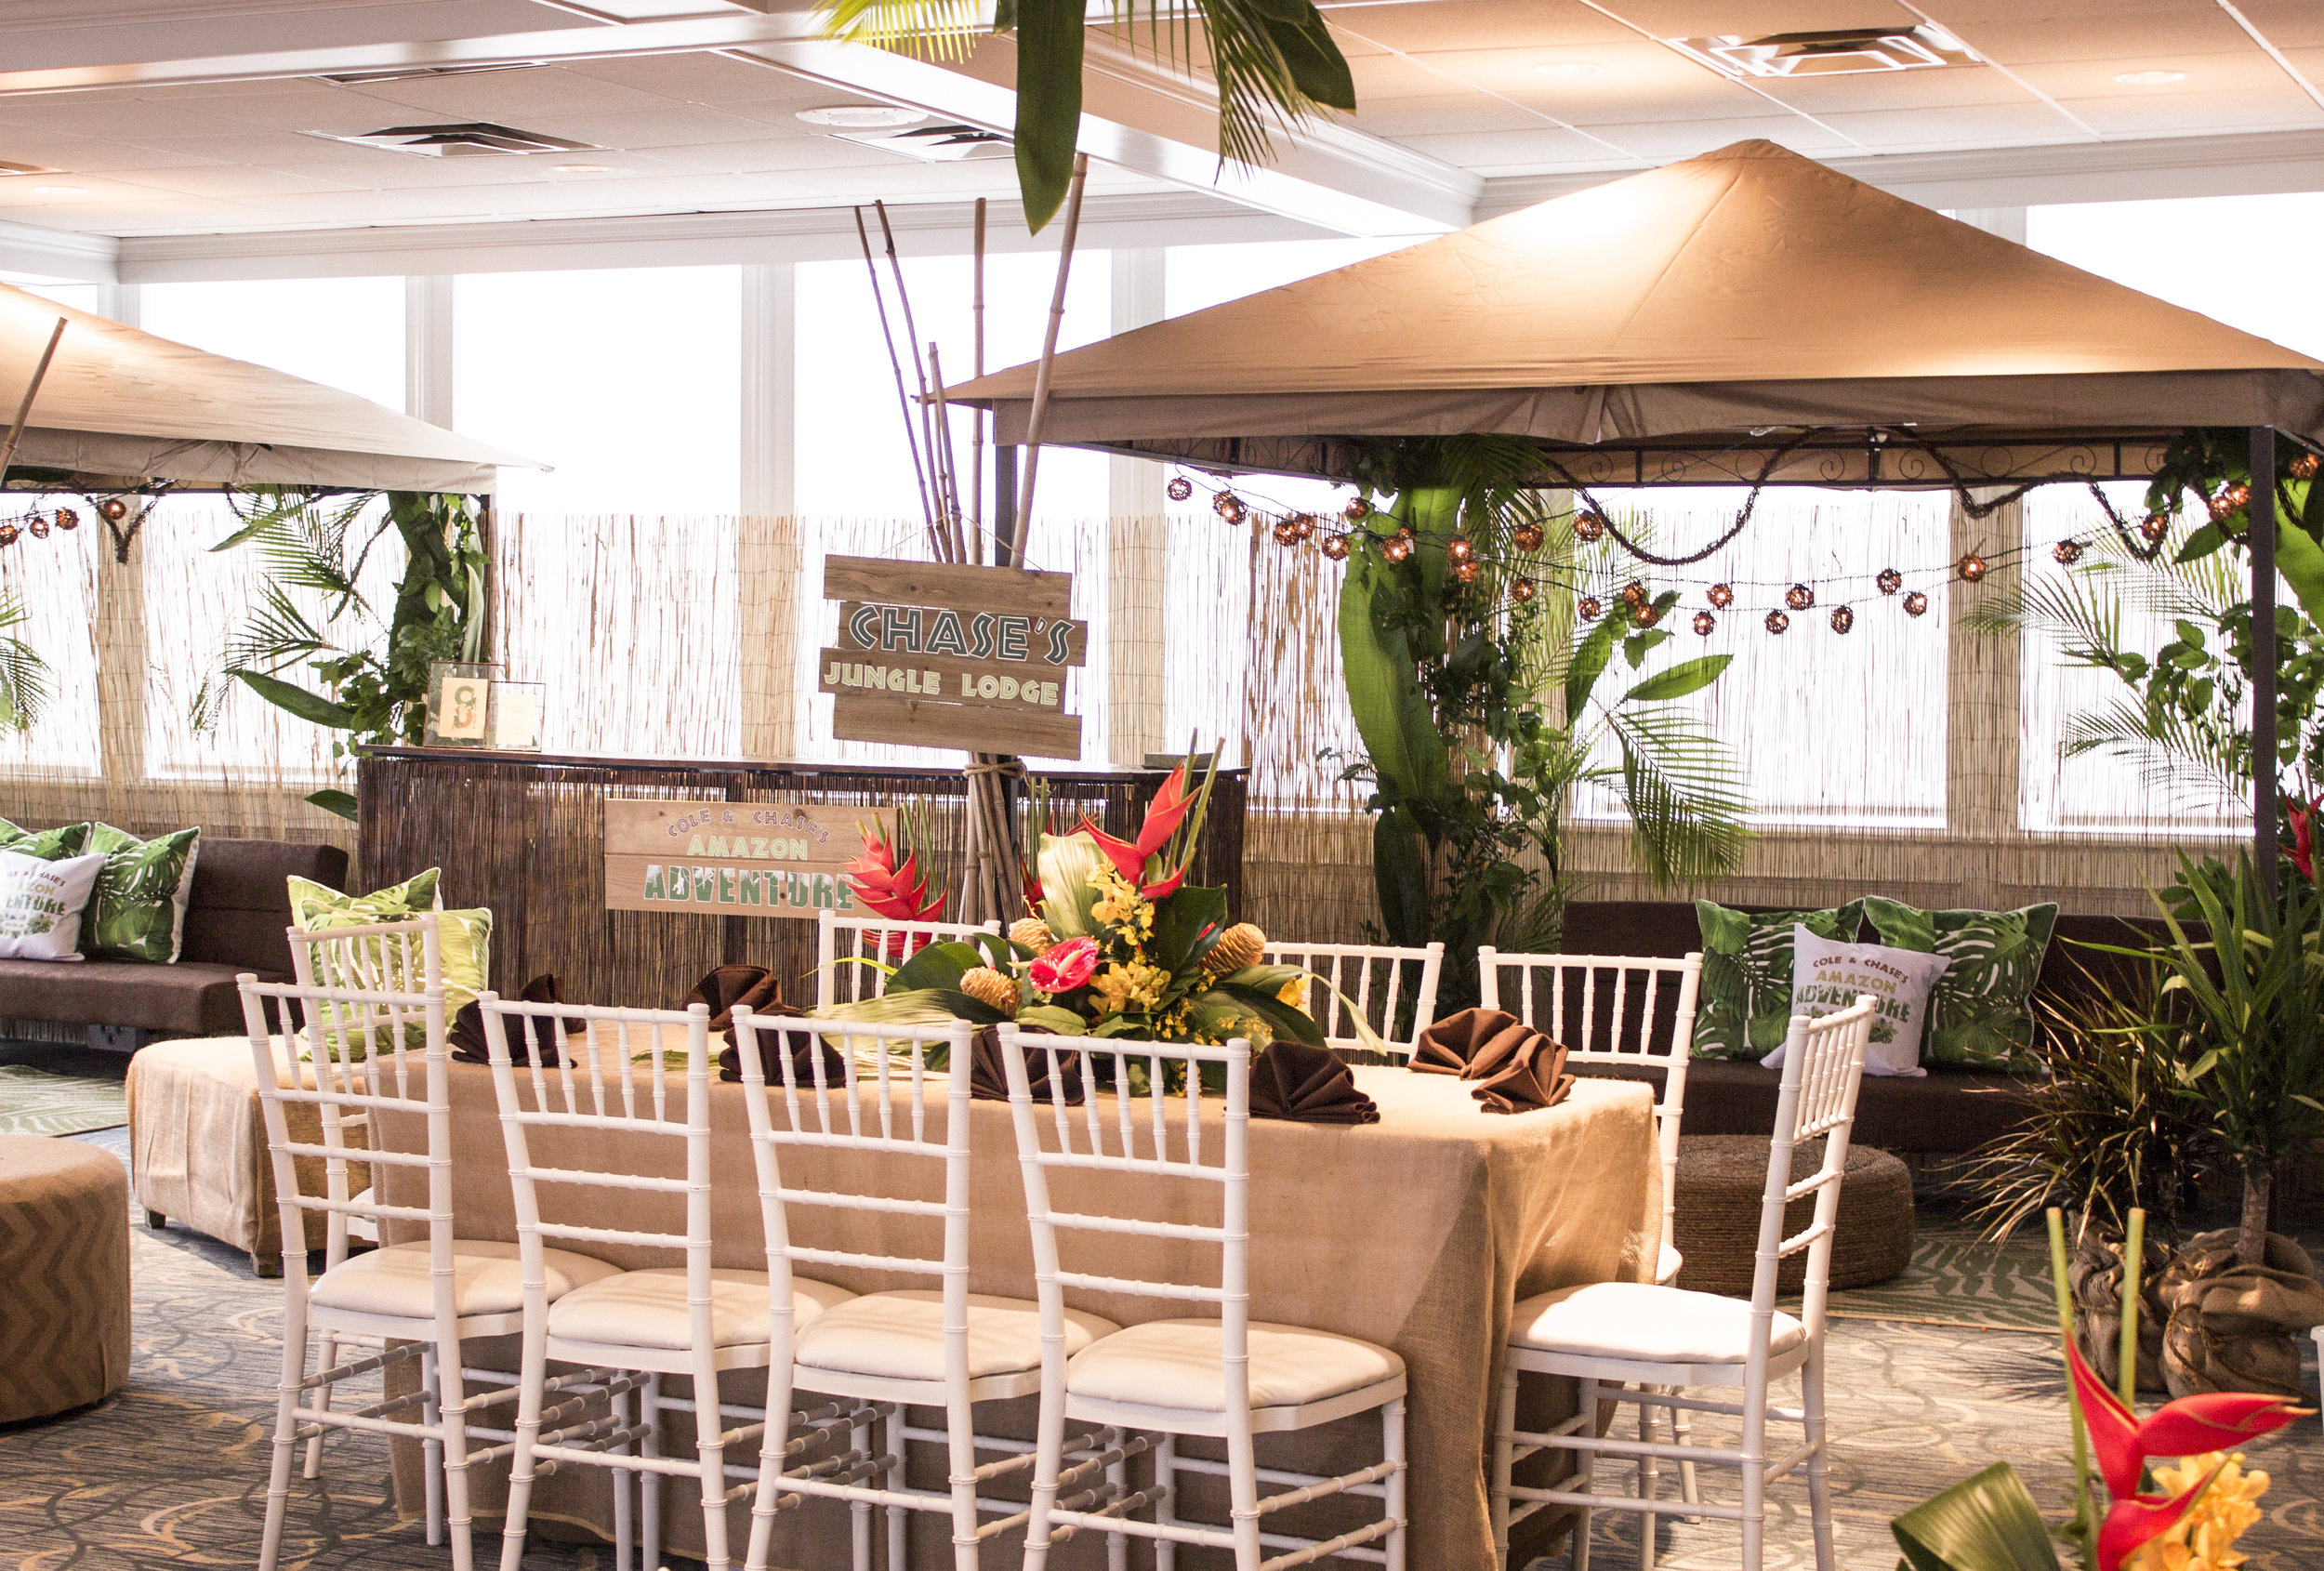 amazon jungle themed mitzvah kids lounge and seating with tropical centerpieces and cabana lounge